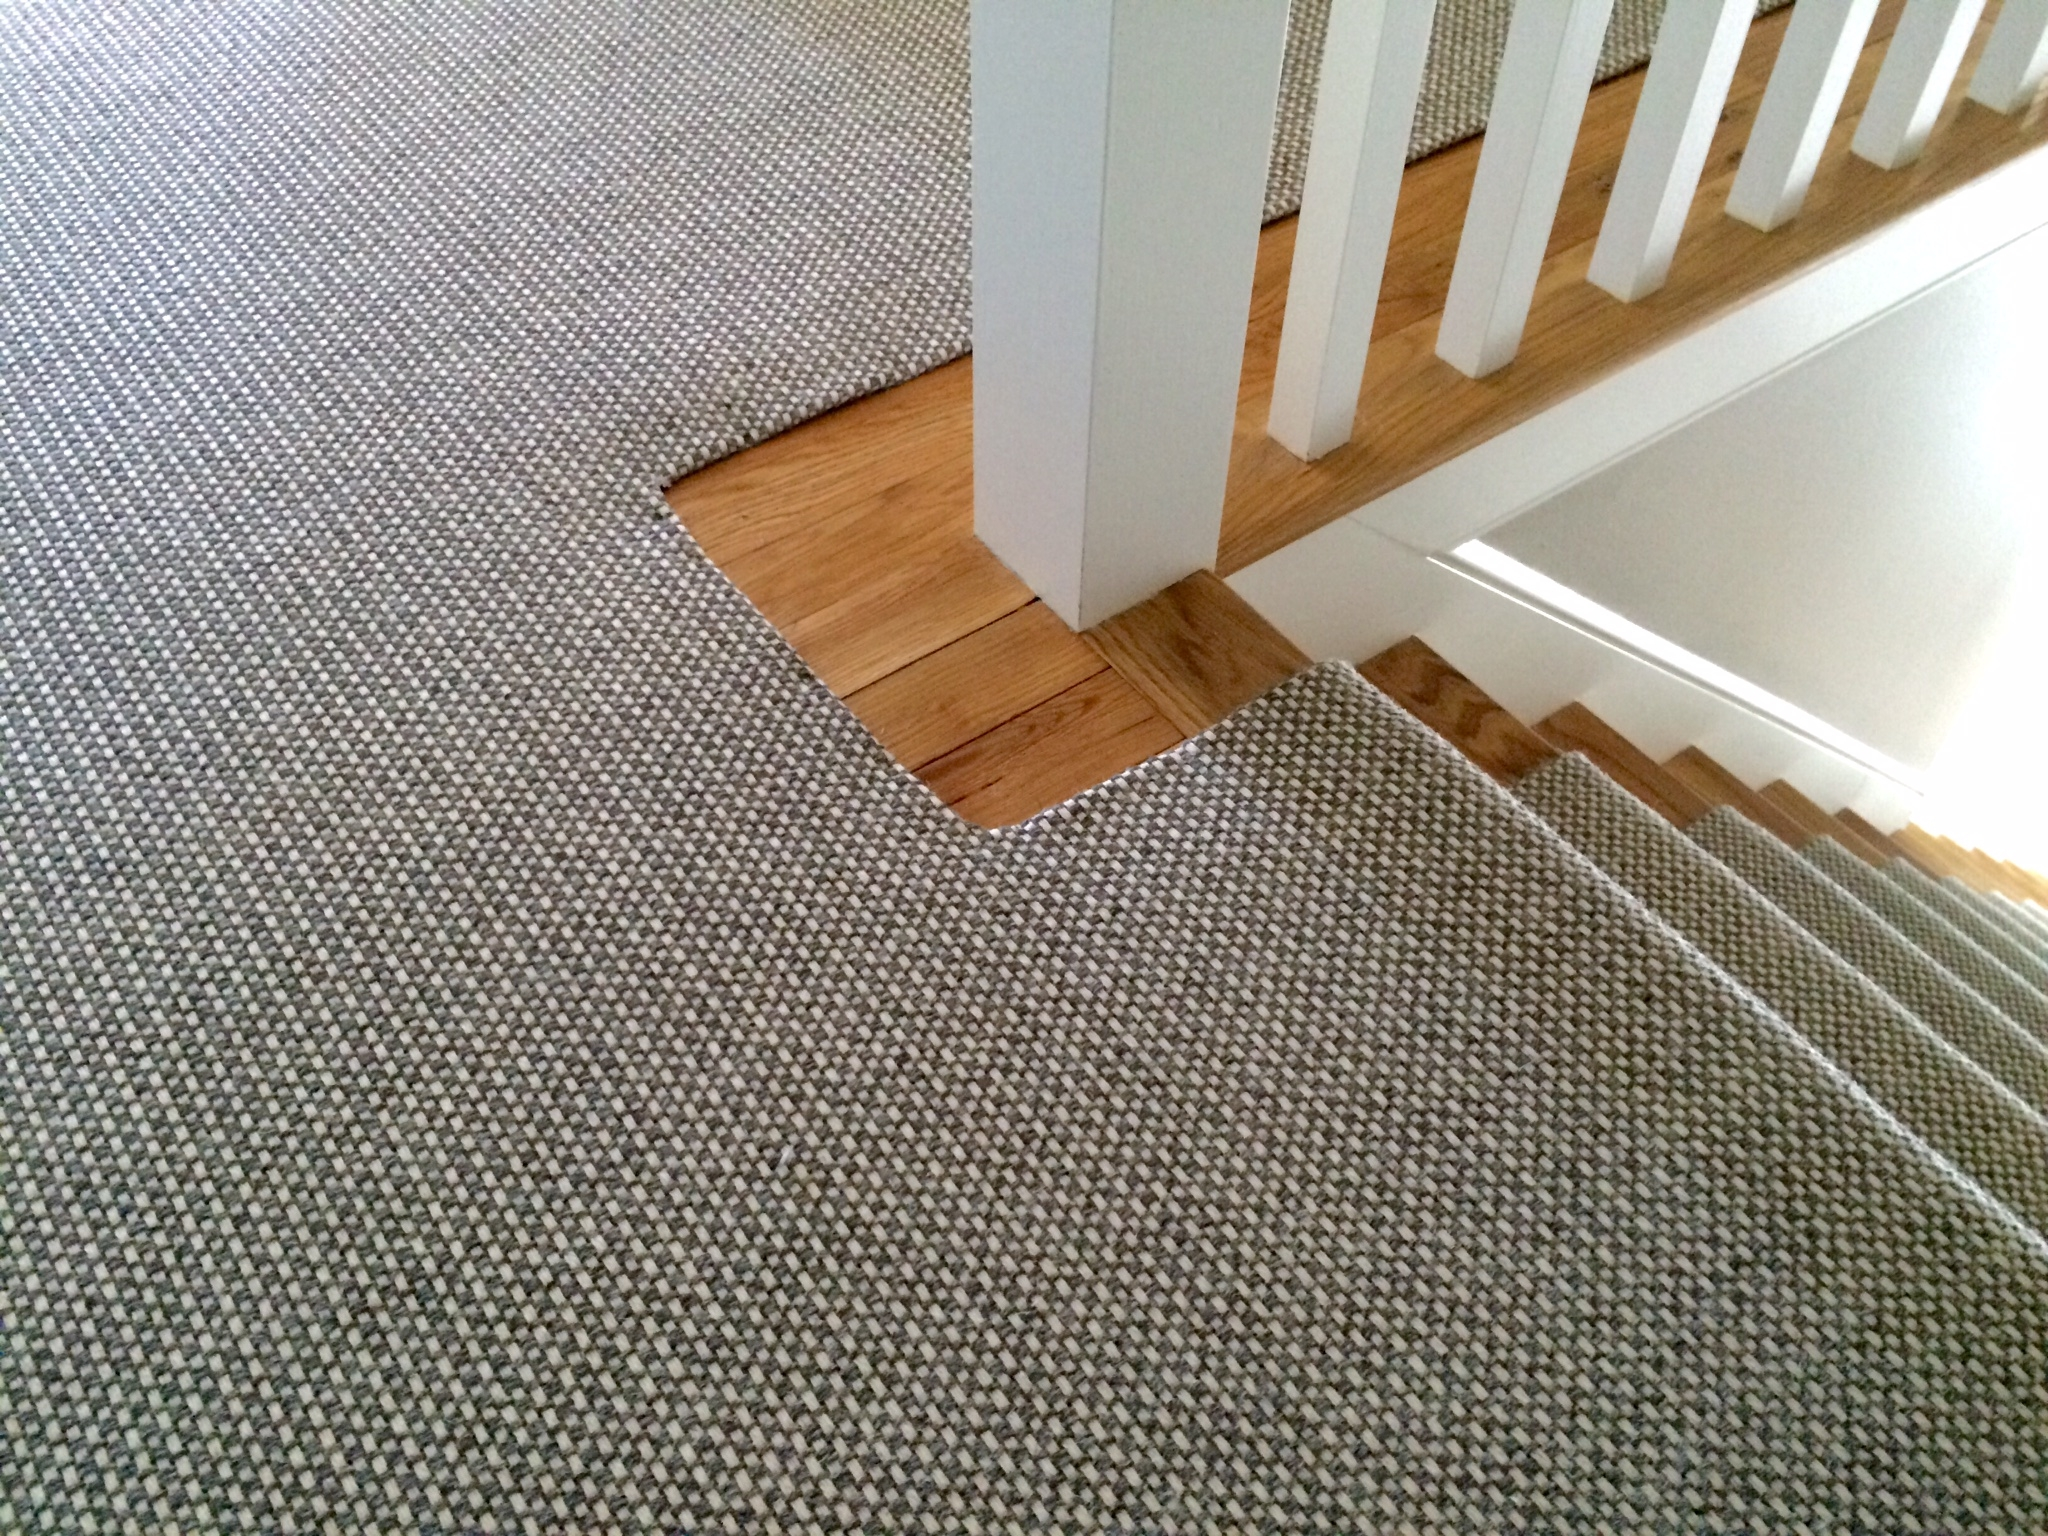 Merida Flat Woven Wool Stair Runner By The Carpet Workroom   Durable Carpet For Stairs   High Traffic   Flower Design   Low Pile   Masland   Stair Treads